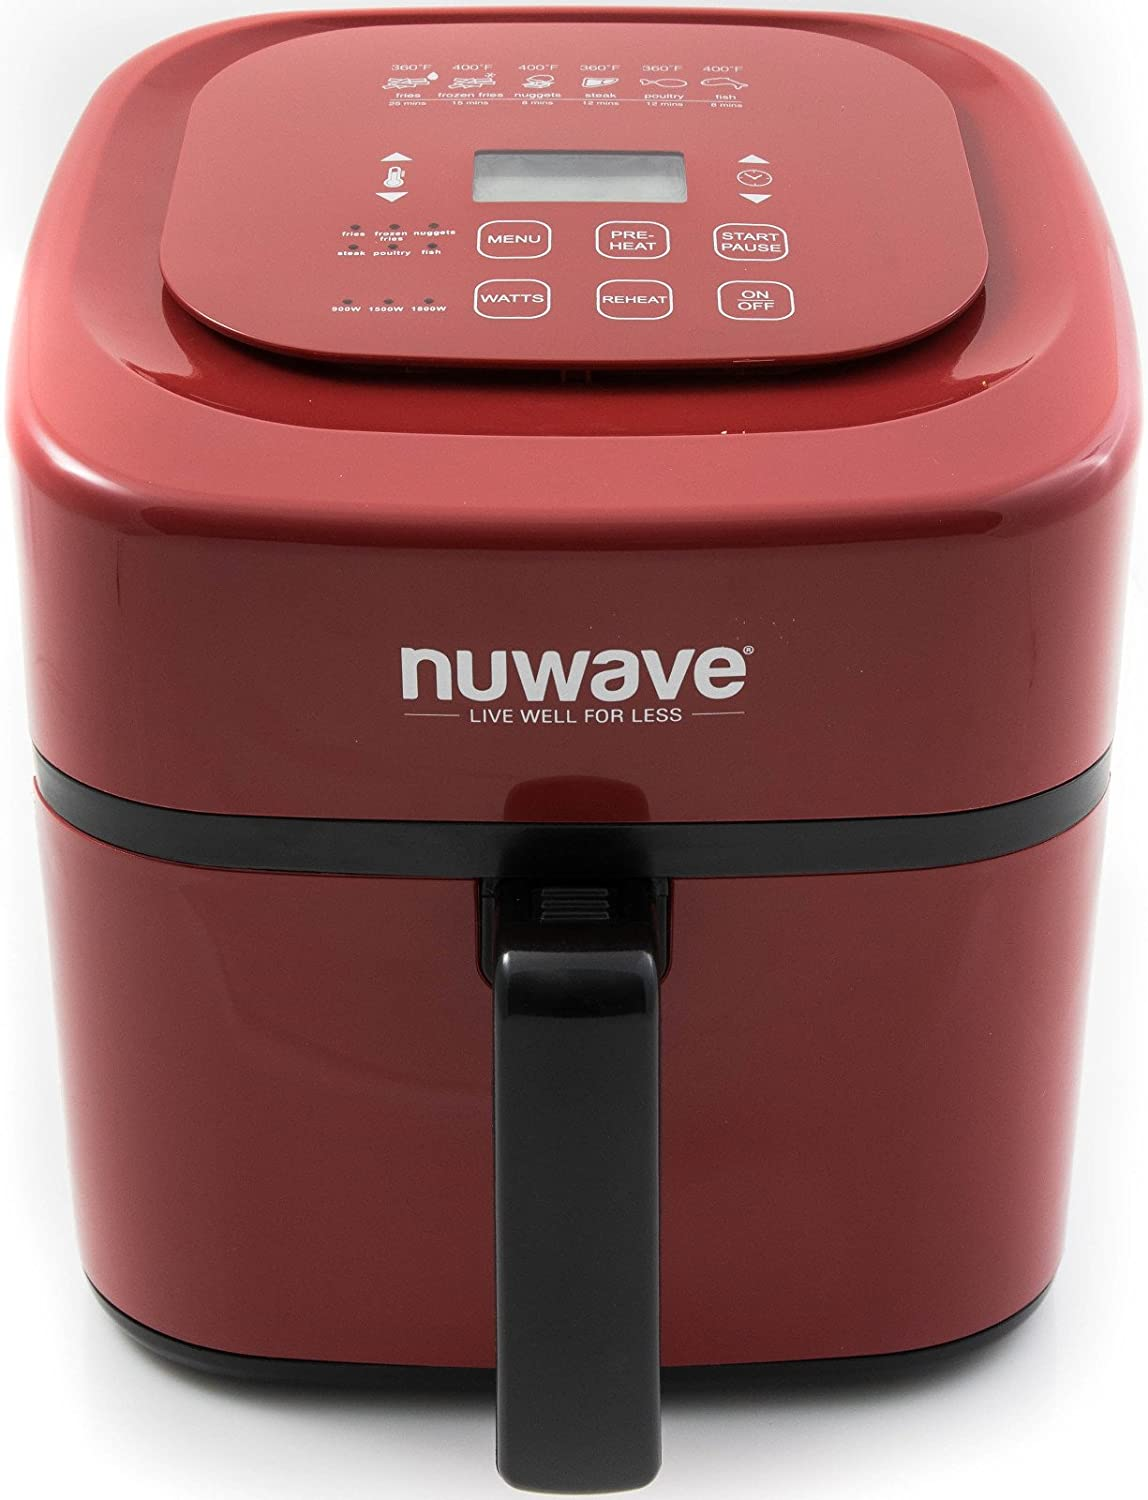 NuWave oven1016 Air Fryer oven, 6 qt Red